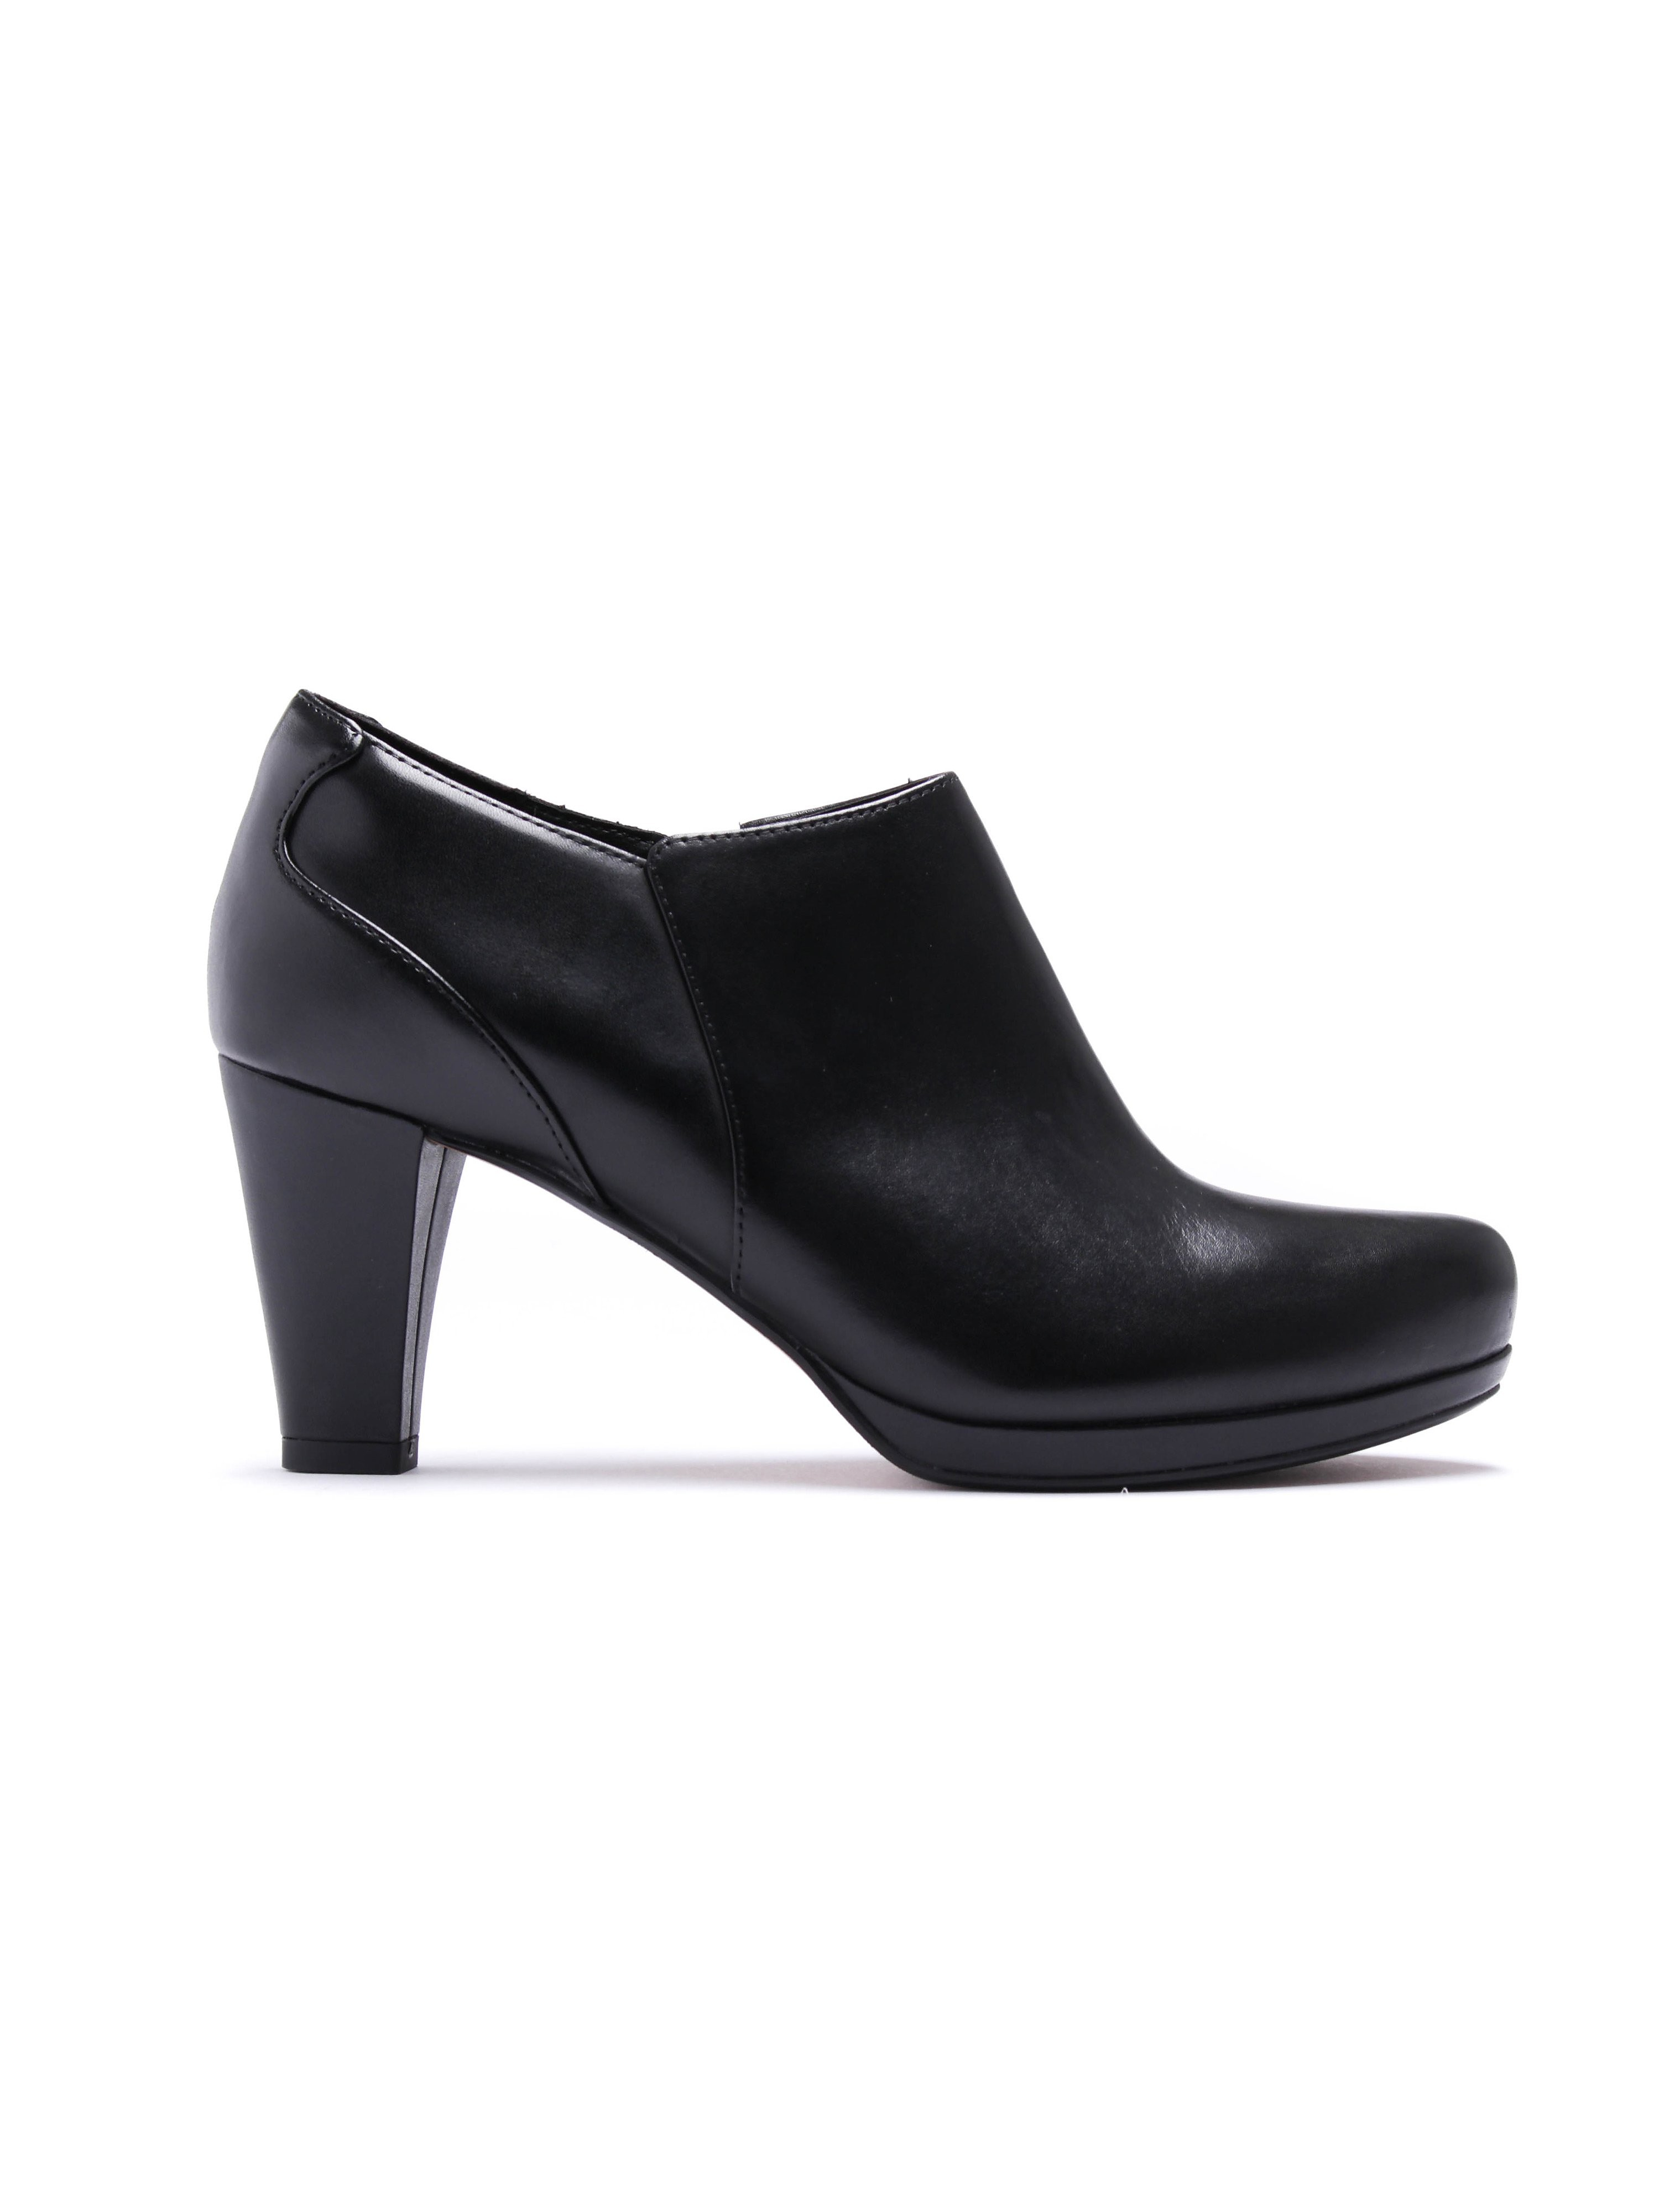 Clarks Women's Chorus True Leather Shoes - Black